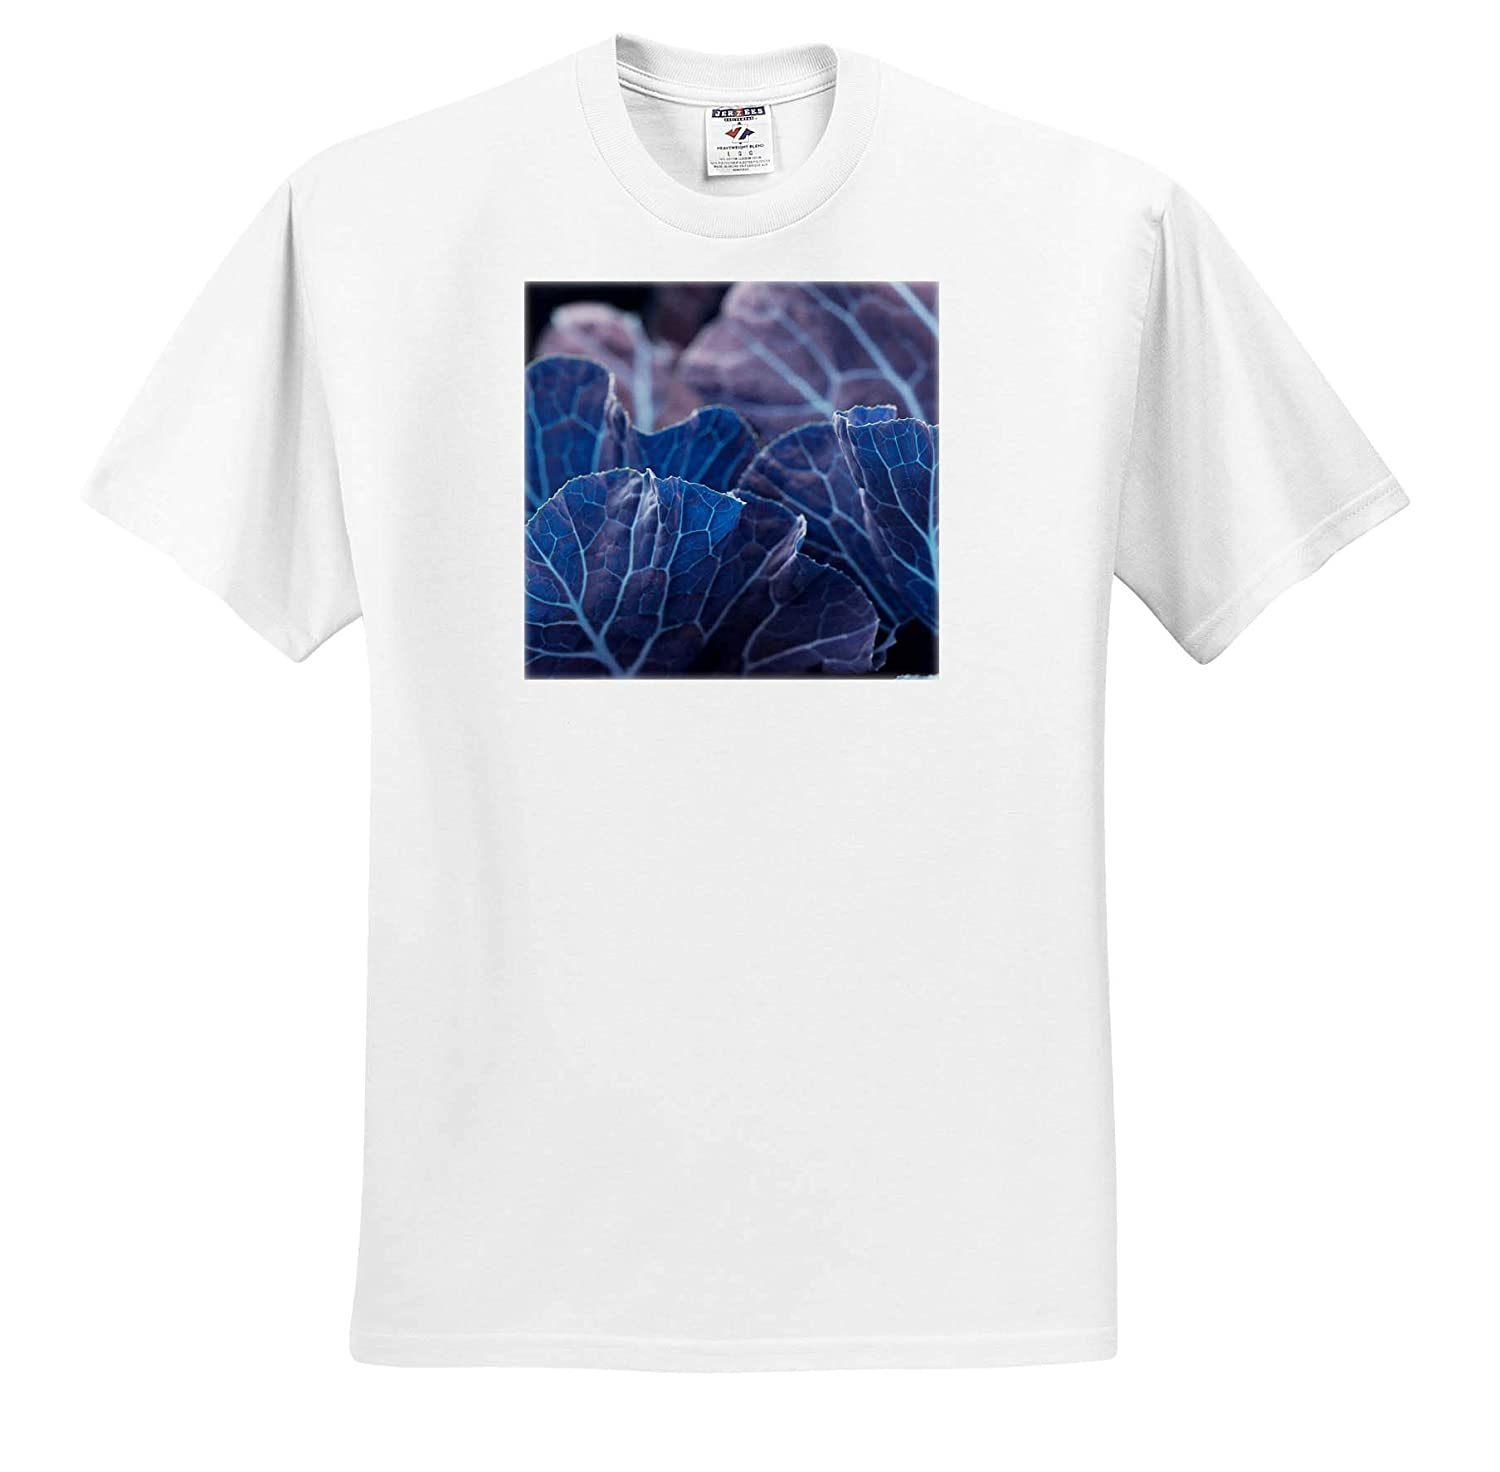 - T-Shirts Abstract an Abstract Macro Photograph of Collard Green Leaves Turned Blue 3dRose Stamp City